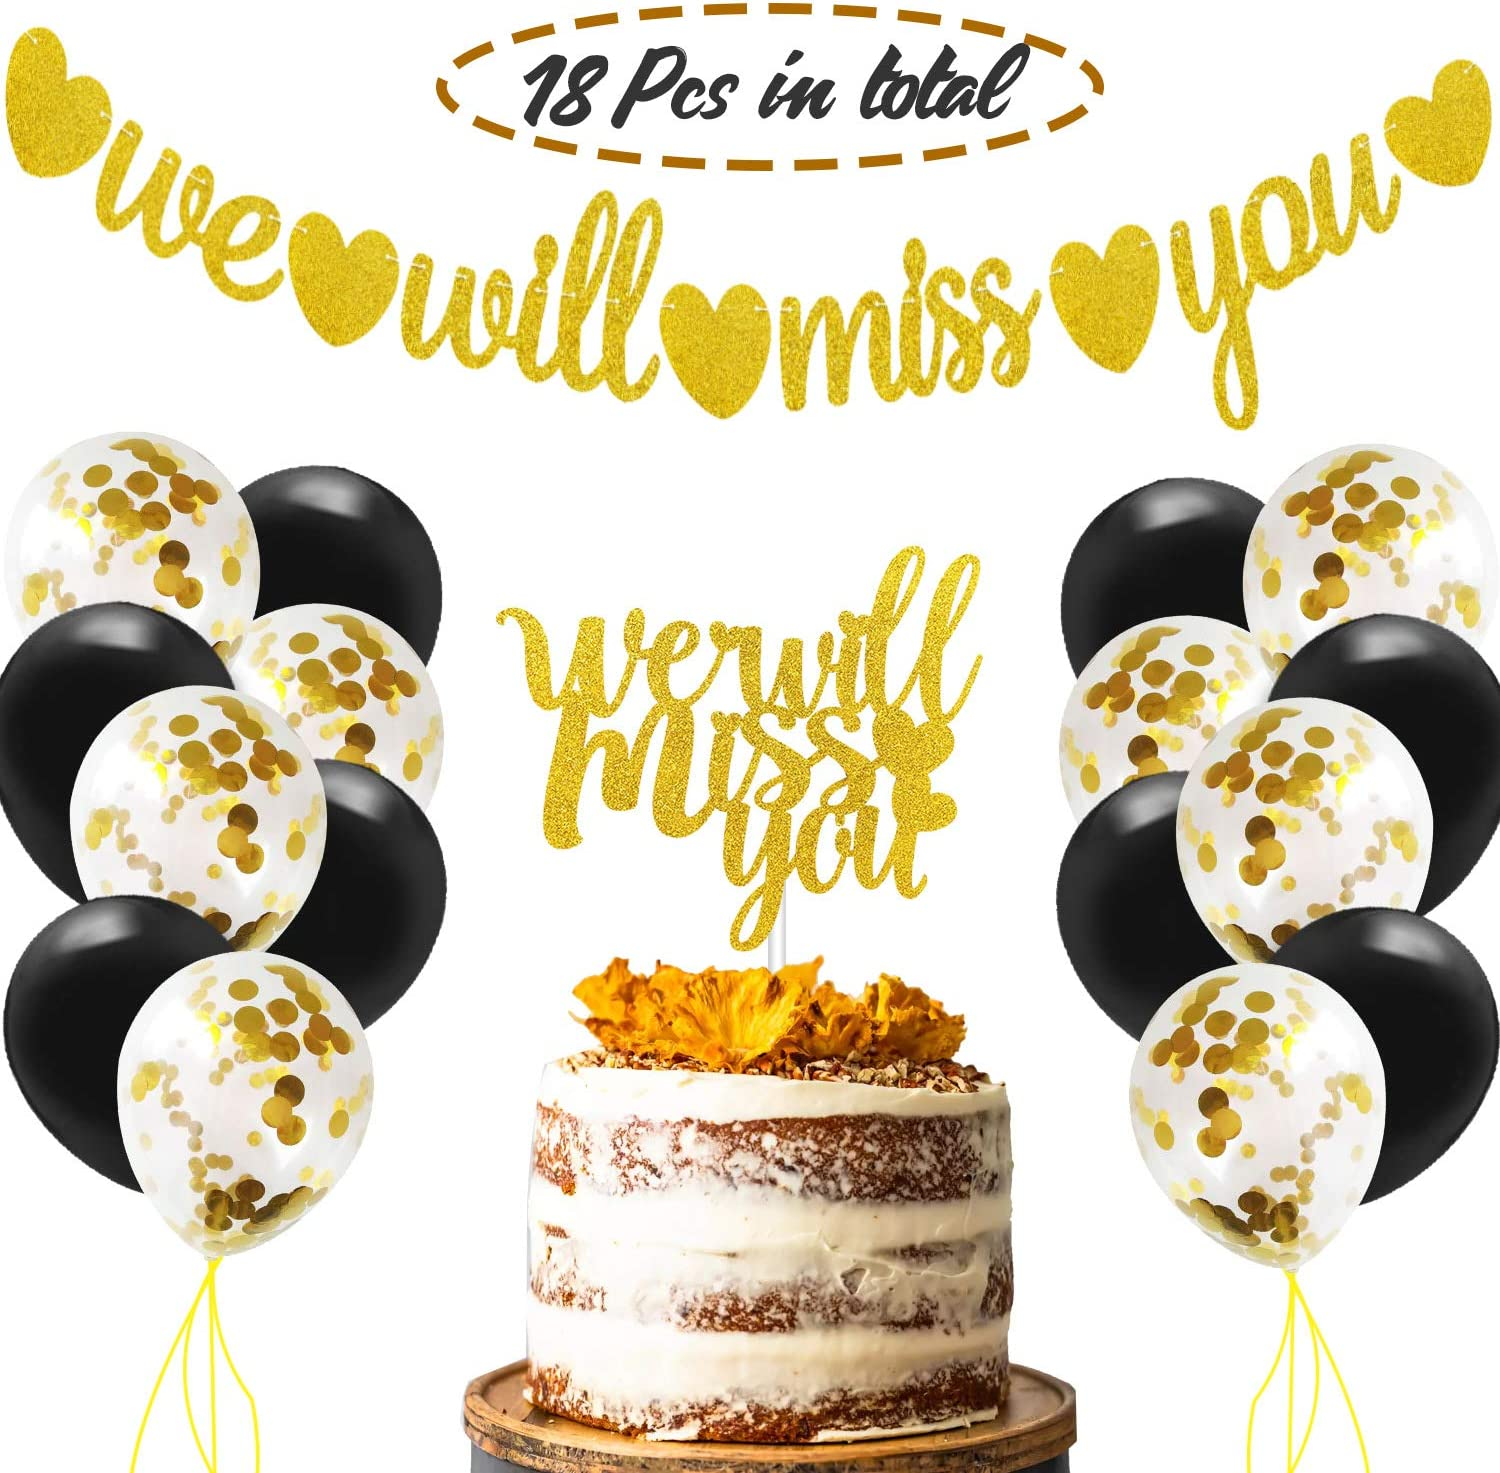 We Will Miss You Bunting Banner & Cake Topper Gold Glitter Party  Decorations with Balloons Kit for Retirement Going Away Farewell Job Change